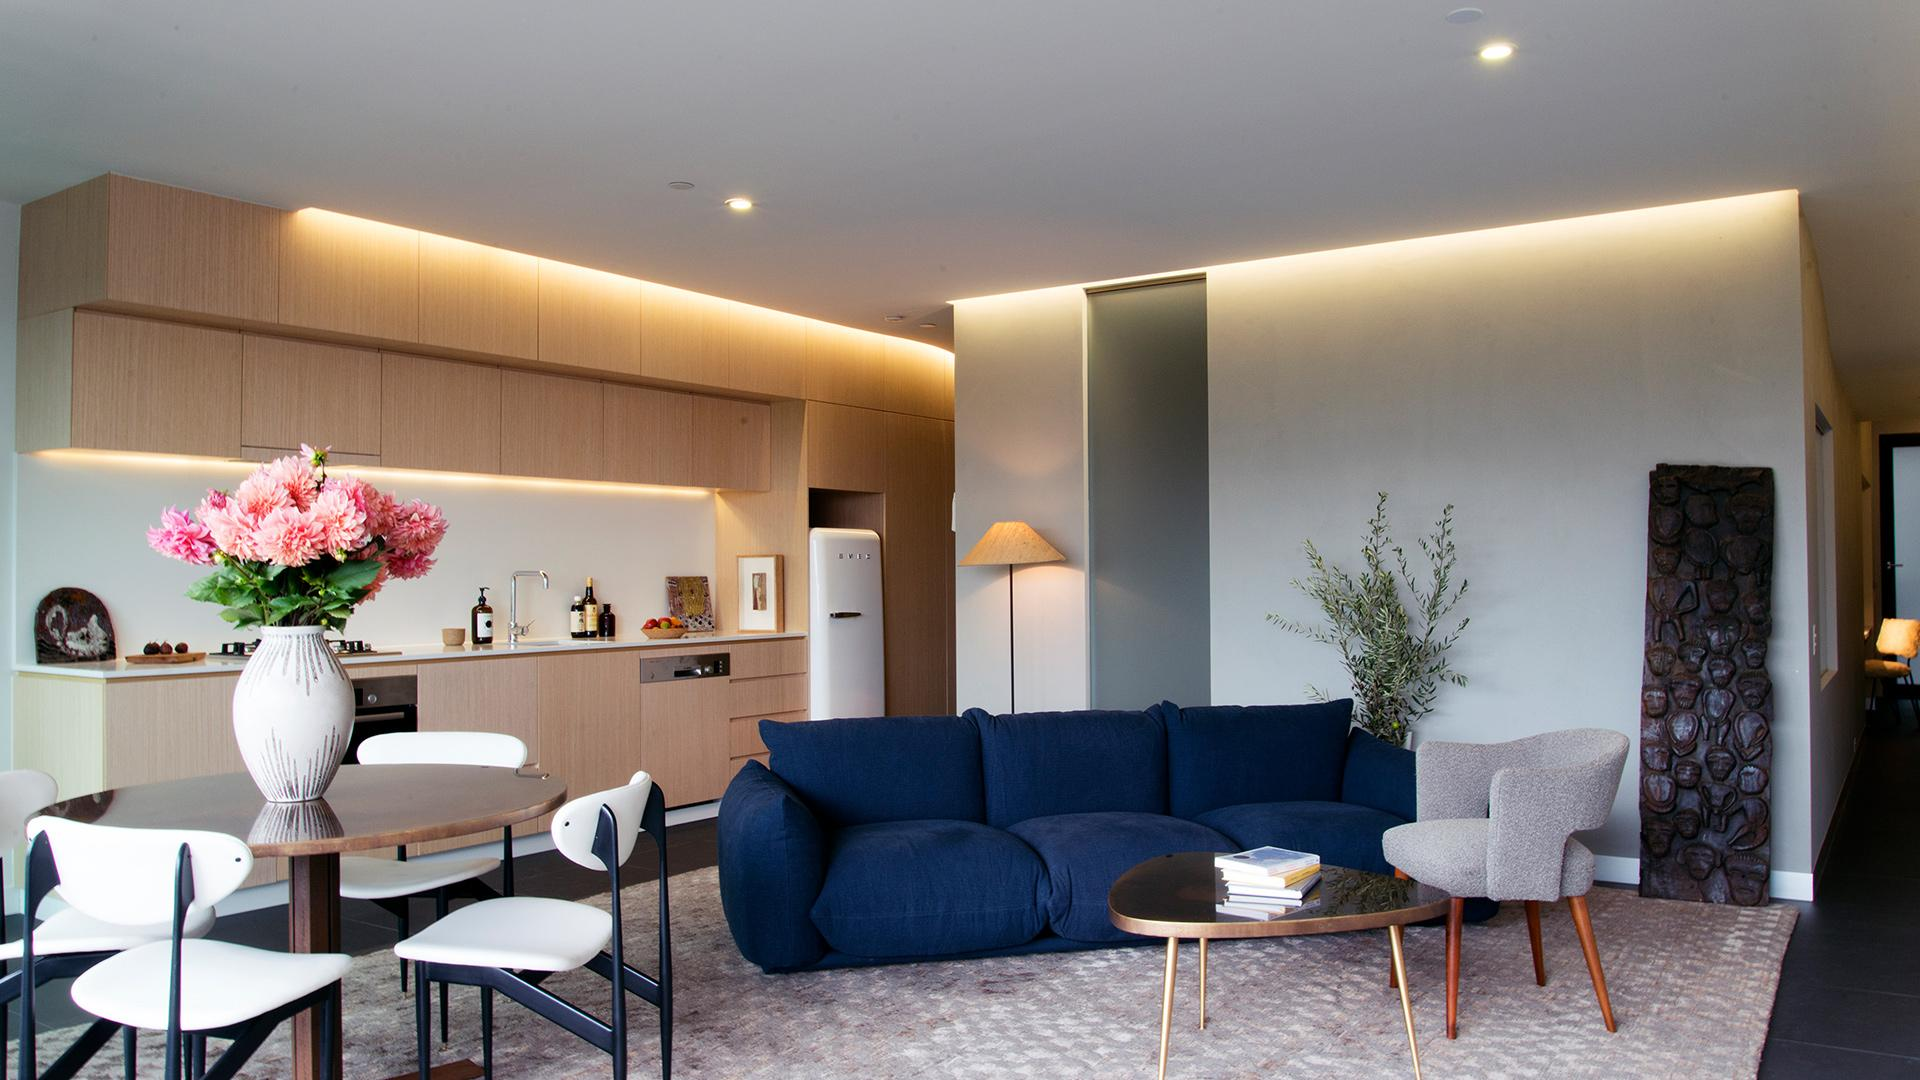 Two Bedder image 1 at Nishi Apartments Eco-Living by Ovolo by null, Australian Capital Territory, Australia